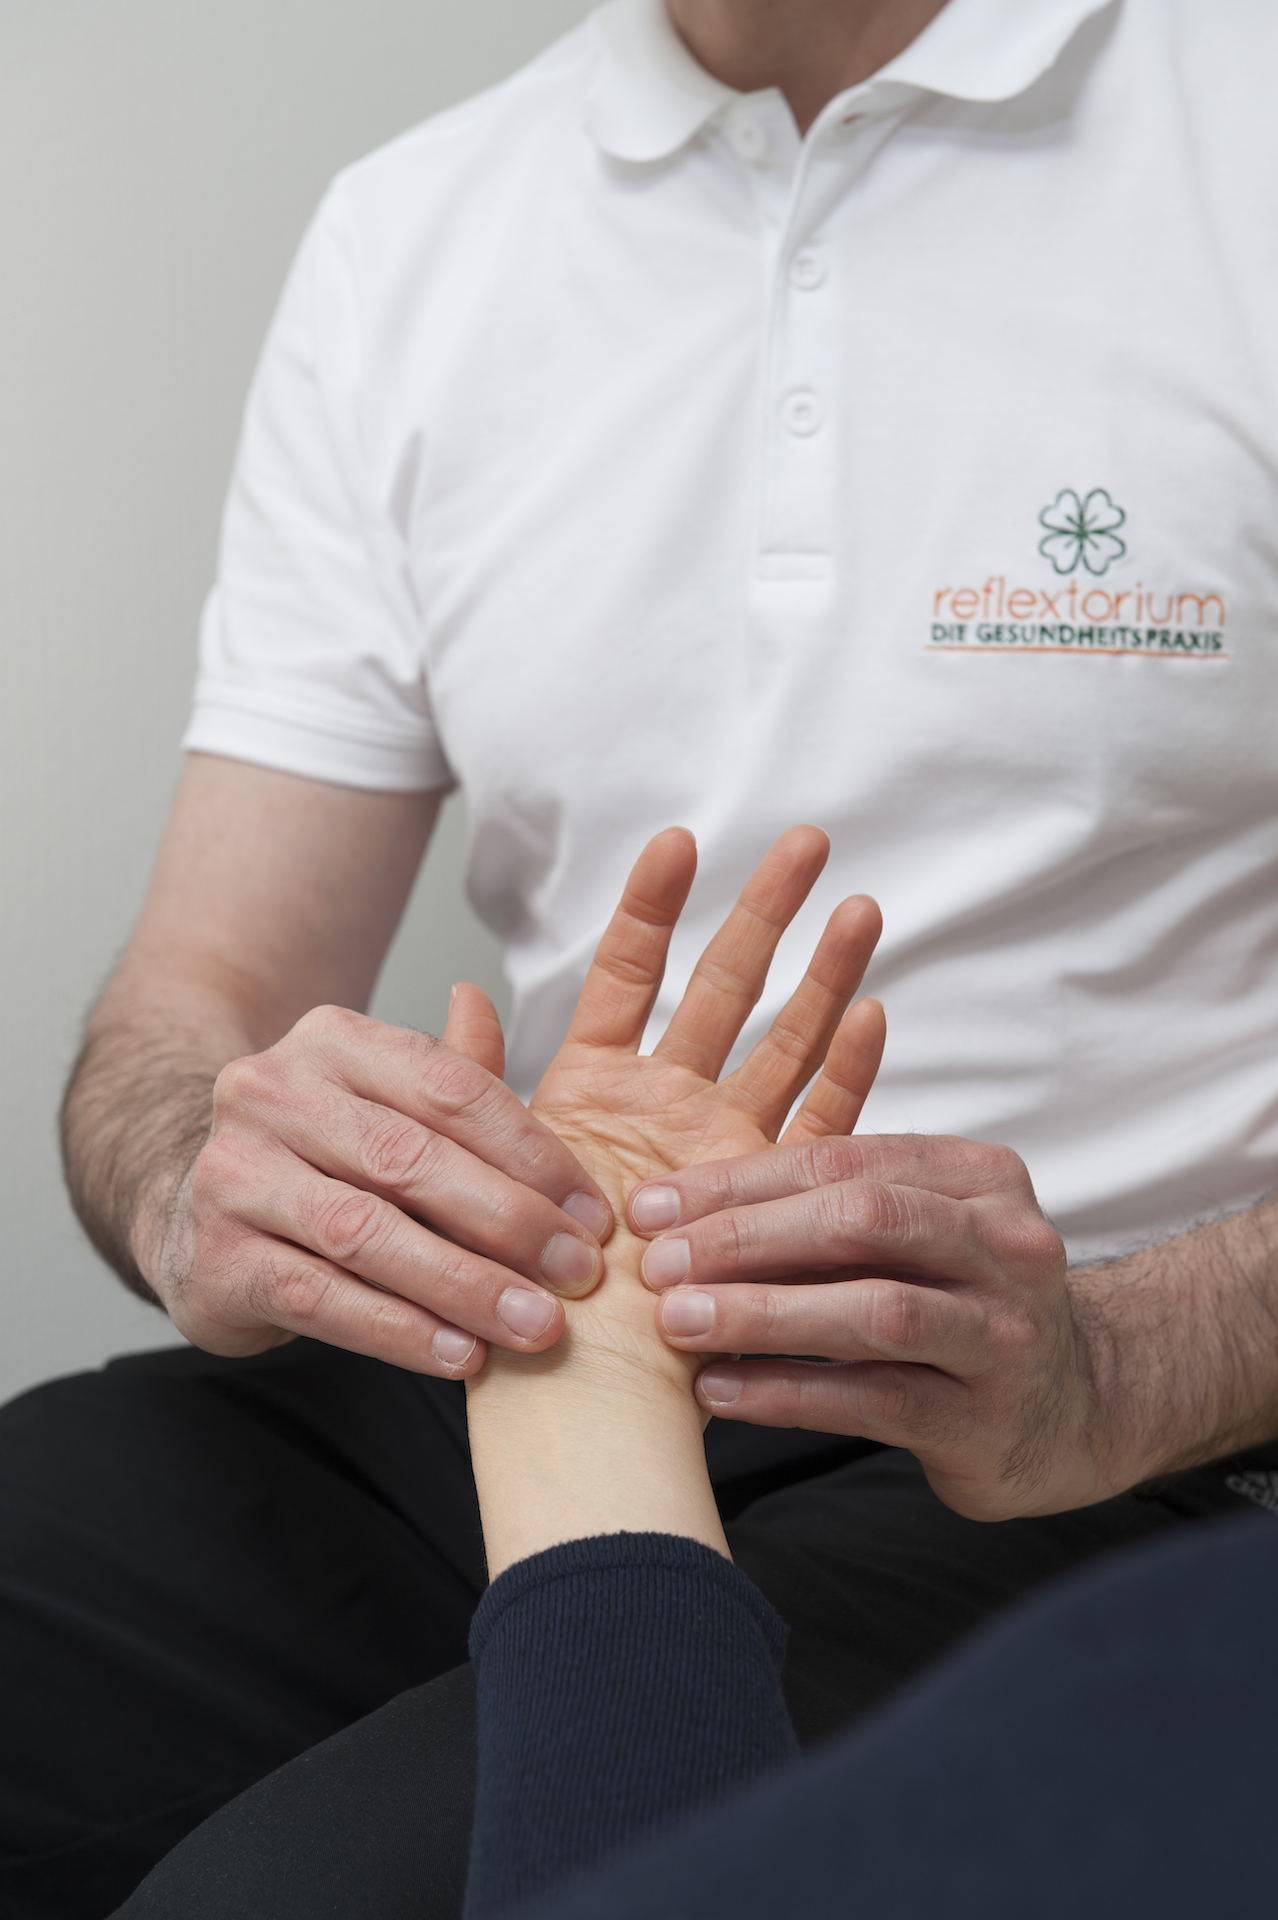 Hand Reflex Zone Massage - energizing